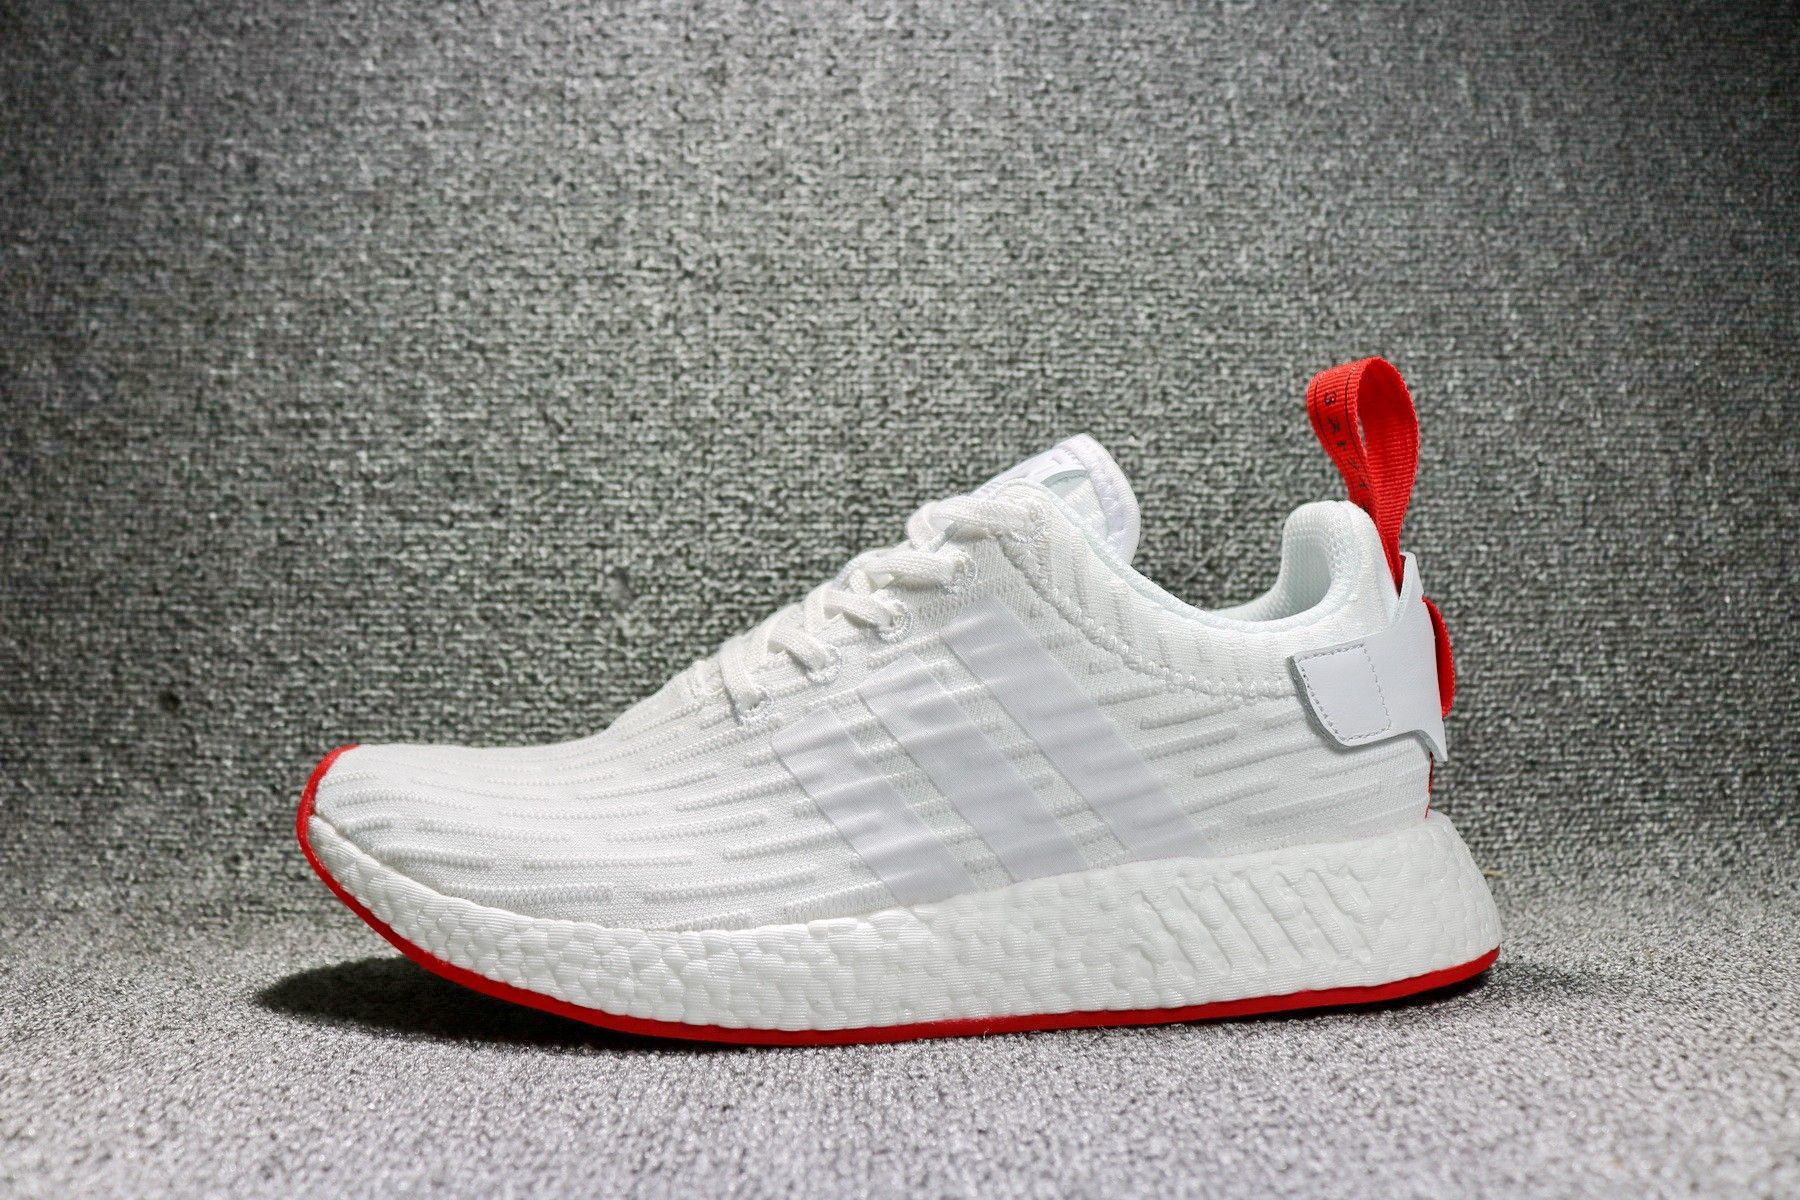 24dba1e8f Adidas NMD R2 Primeknit Footwear White Core Red